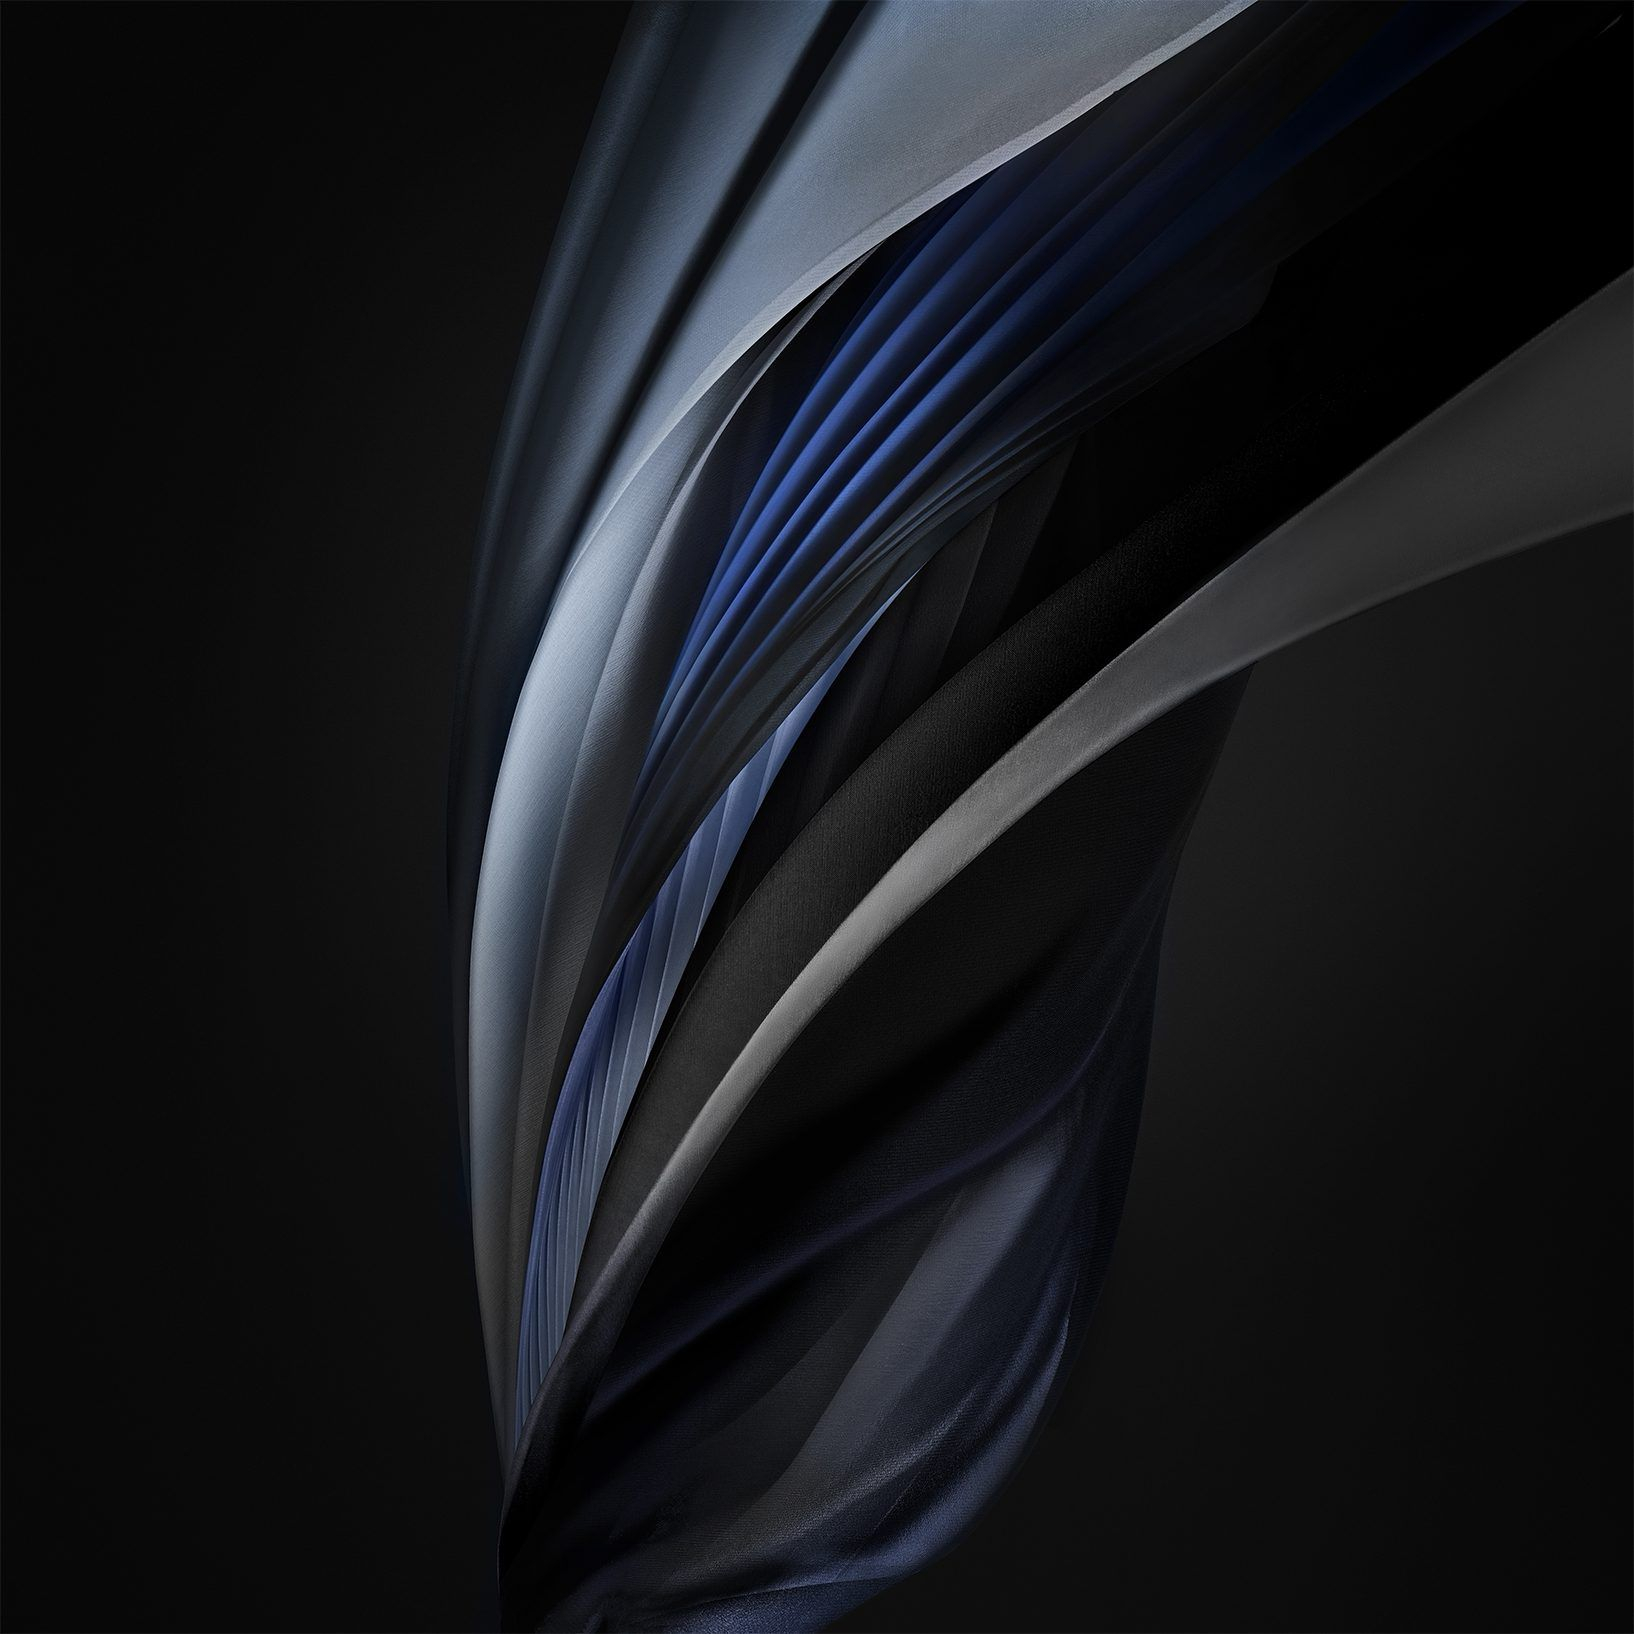 iphone se 2 stock wallpapers